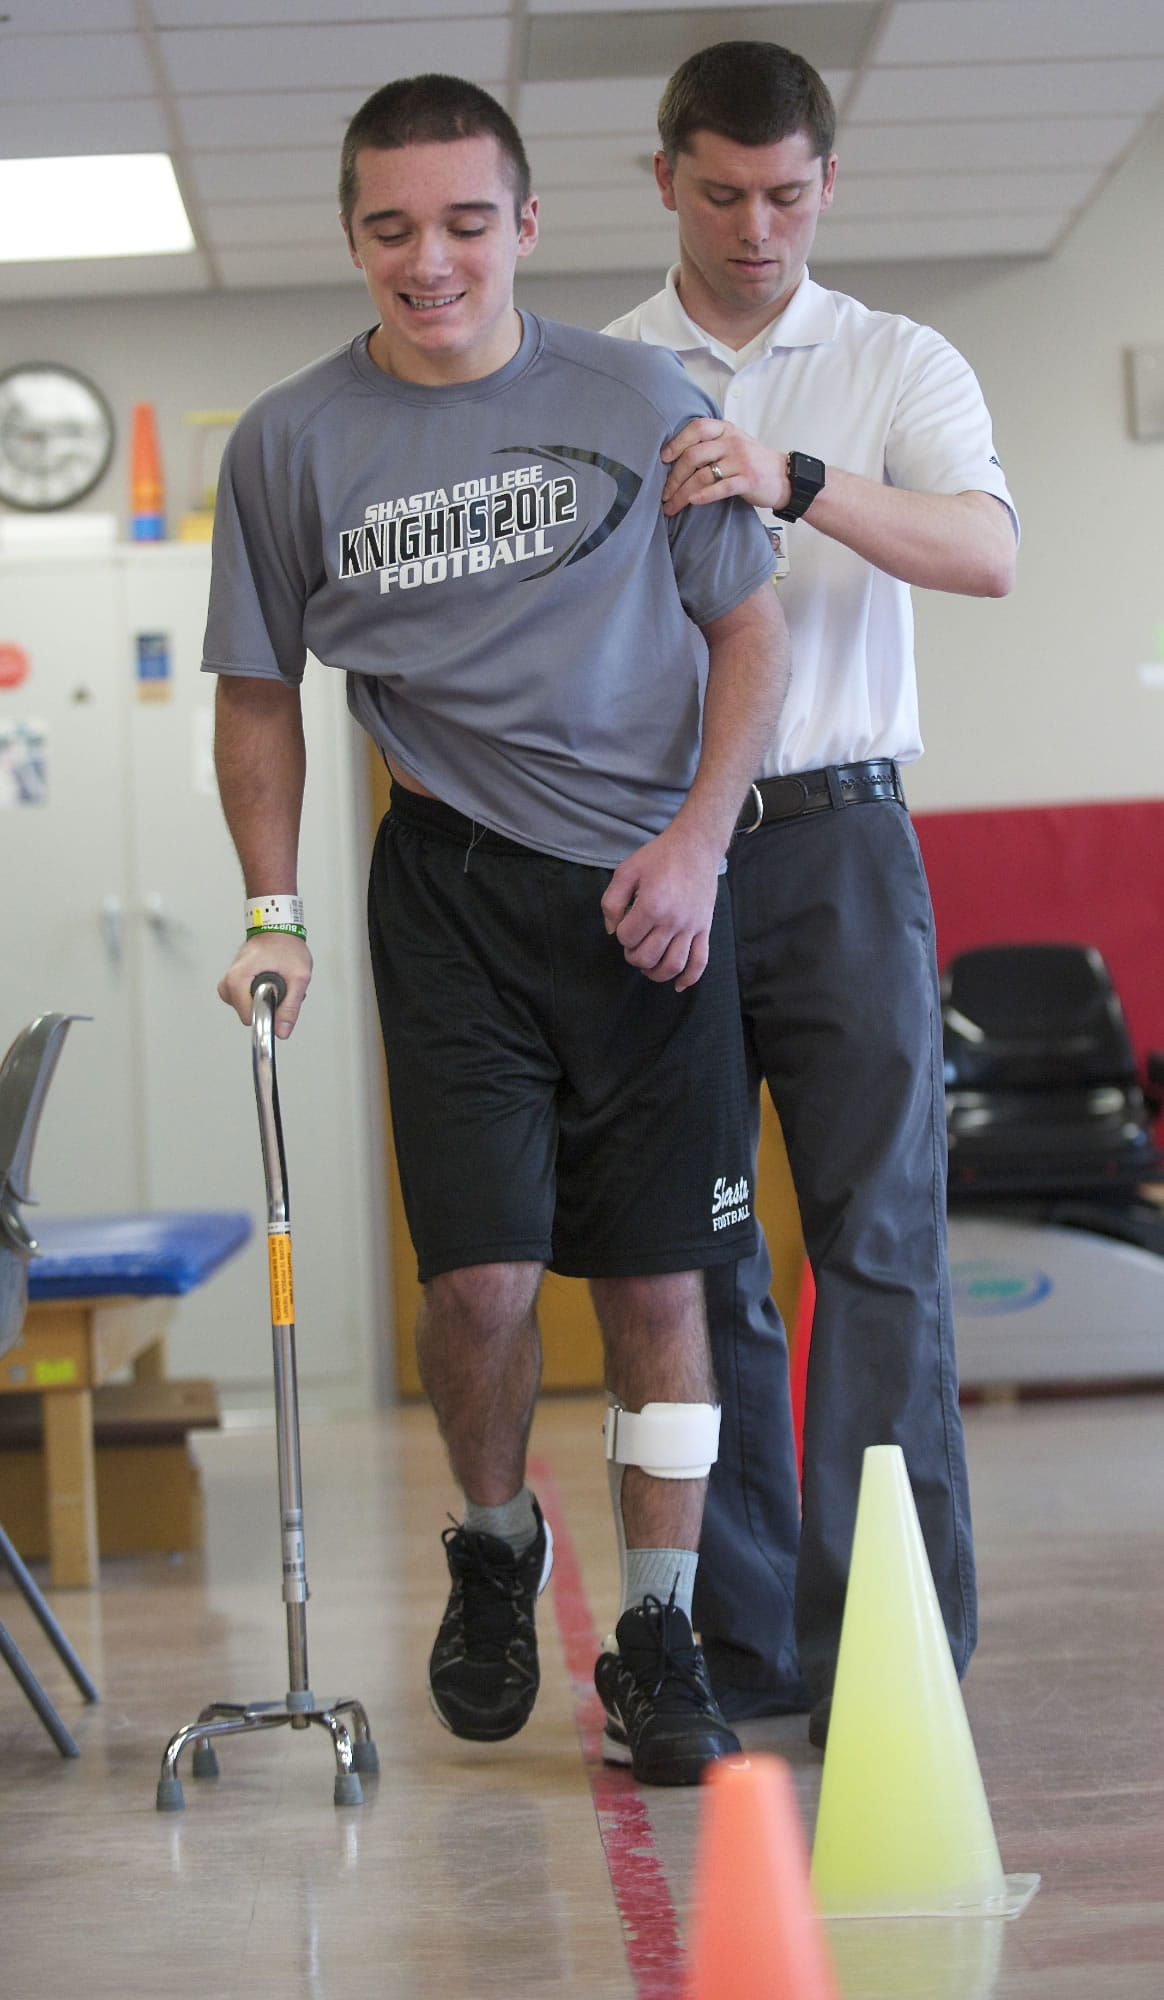 Tyler Burton, who suffered a traumatic brain injury after being assaulted last year, works with his physical therapist, Tim Hughes, at PeaceHealth Southwest Medical Center on Monday. Burton will be discharged from the hospital's inpatient rehabilitation center in the coming days. He arrived at the center in late December.